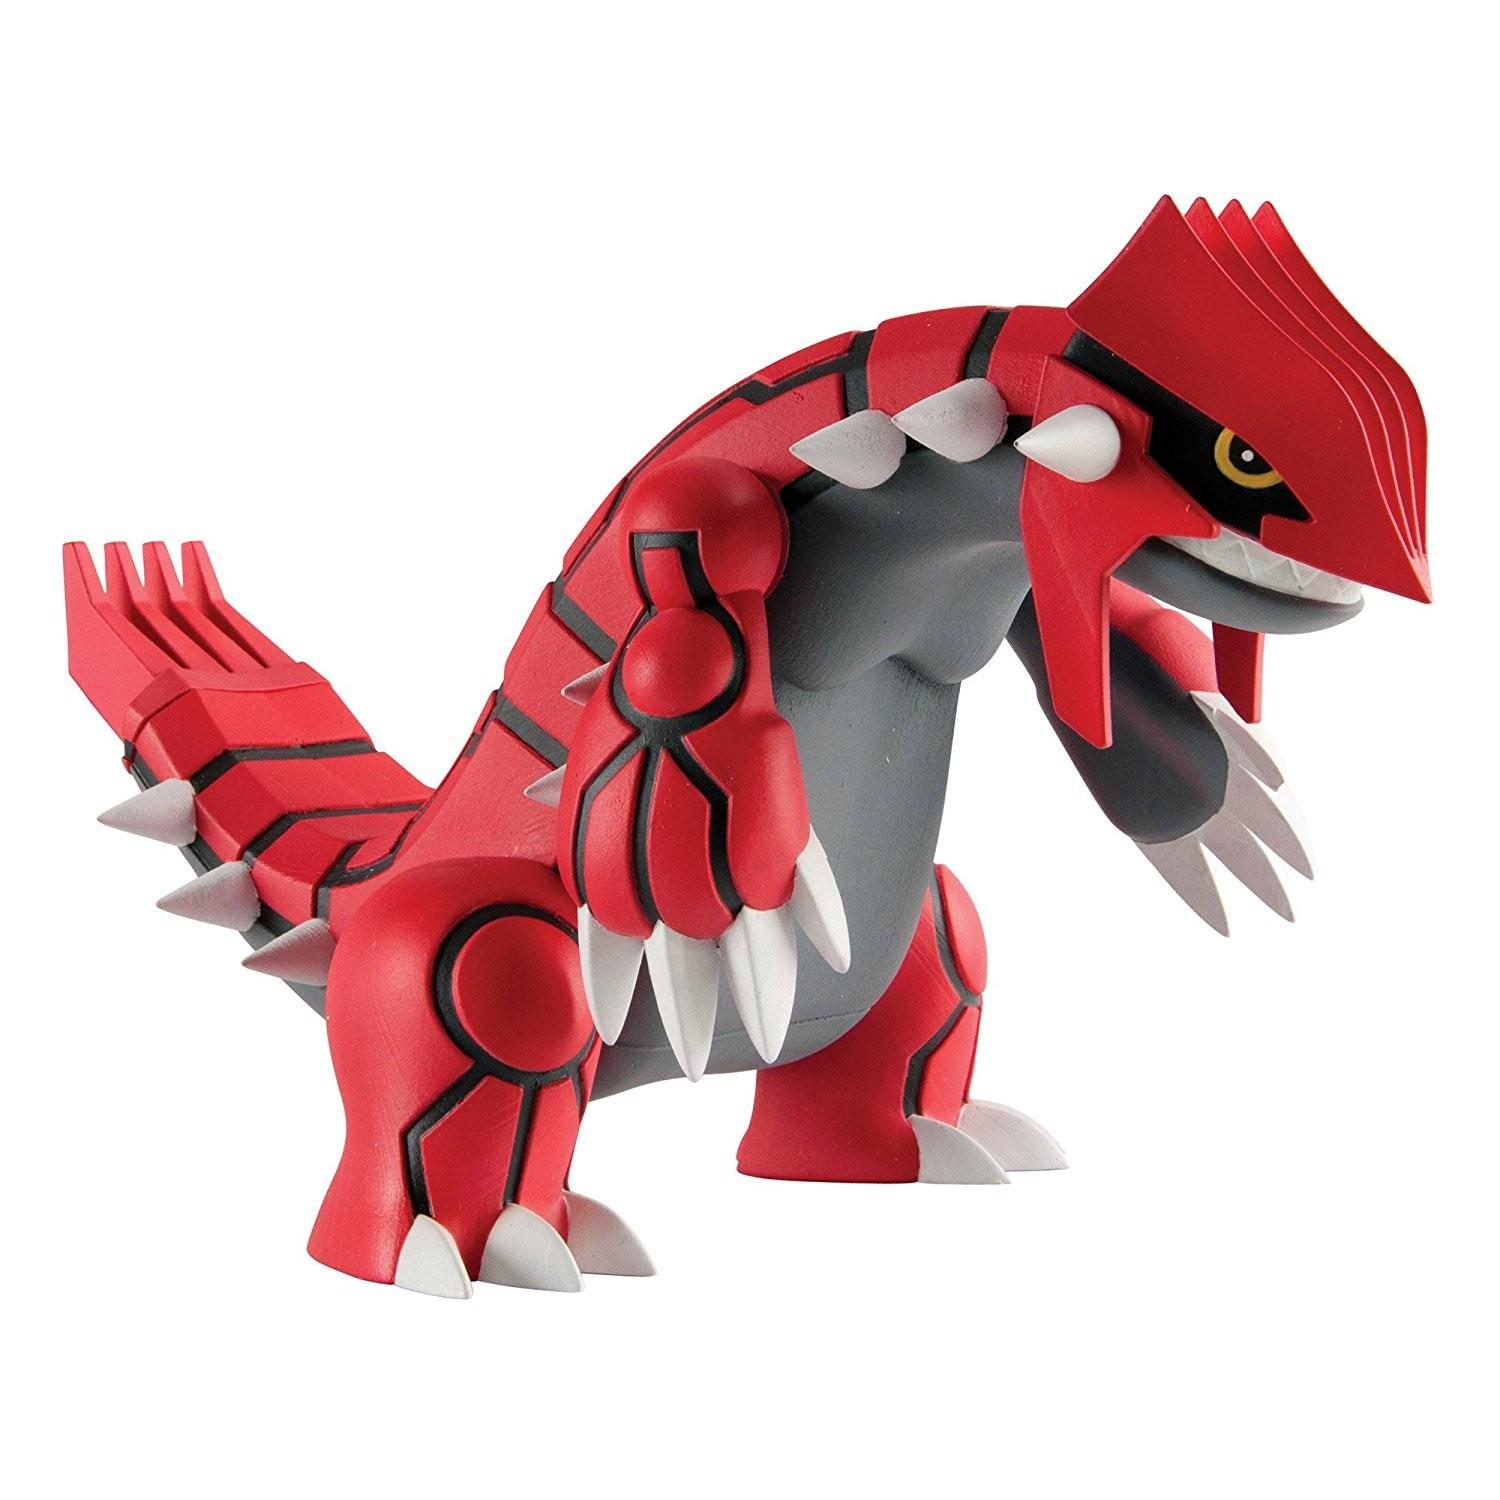 Pokemon Large 10 Inch Battle Action Figure - Groudon